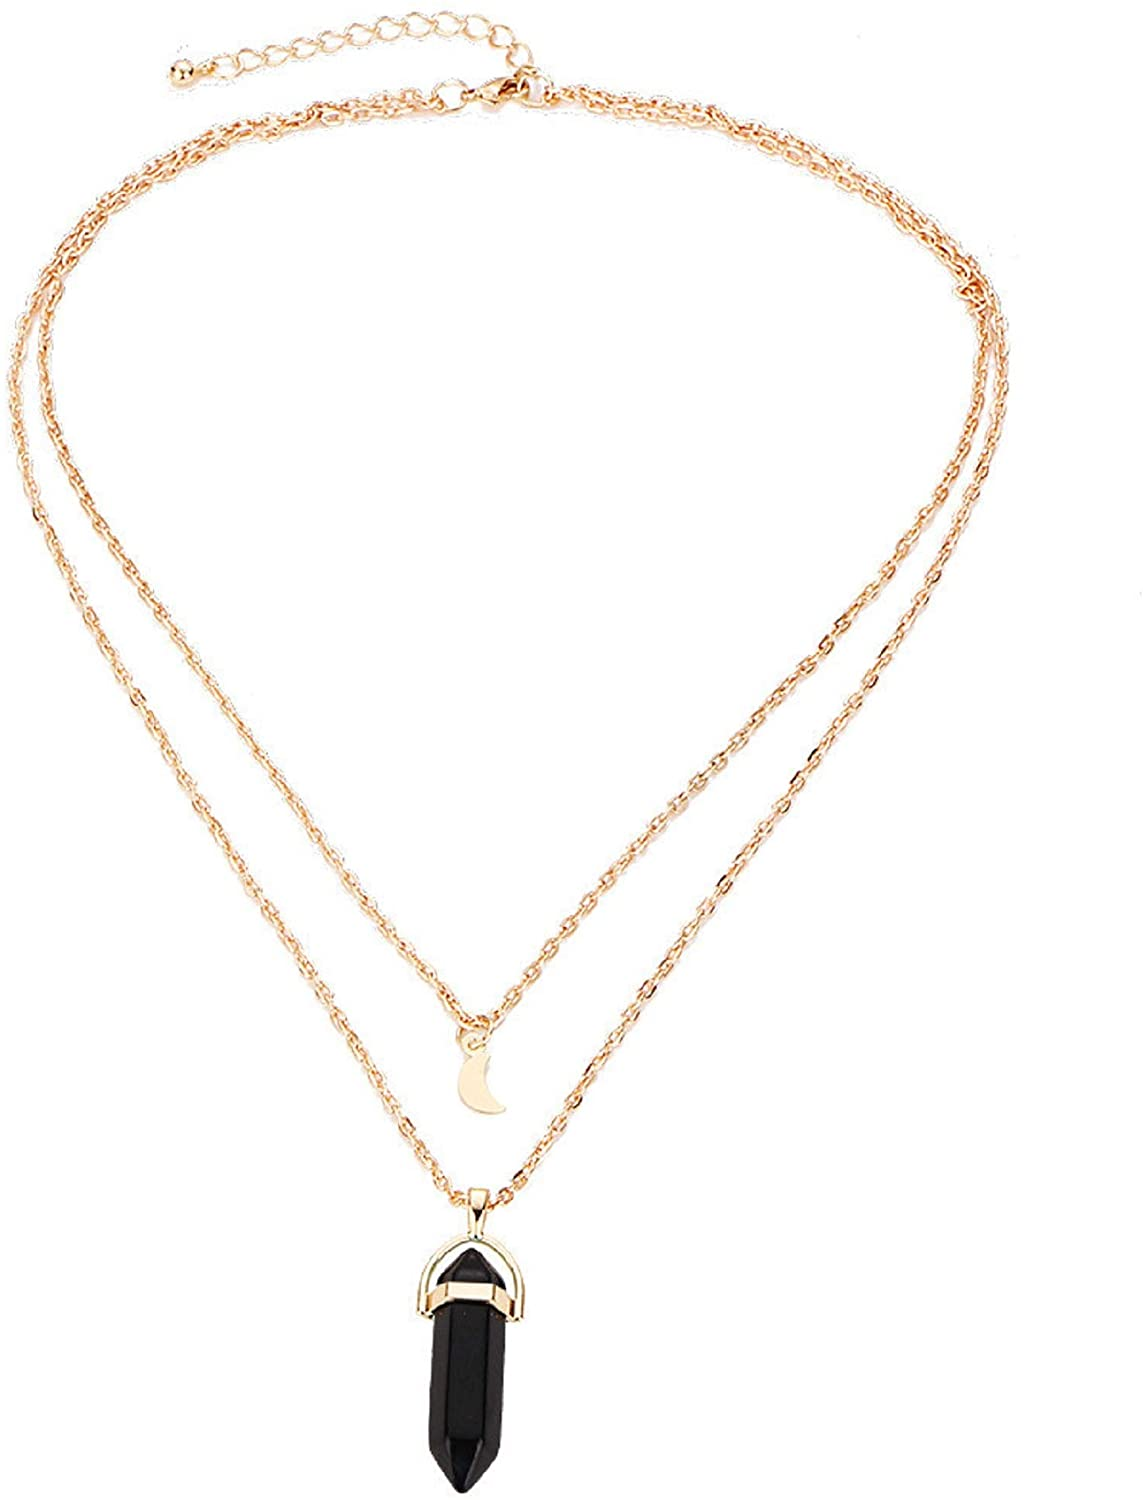 Hexagonal Chakra Crystal Bullet Shape Gemstone Layered Pendant Necklaces Pointed Quartz Stone Chain Chokers Necklaces